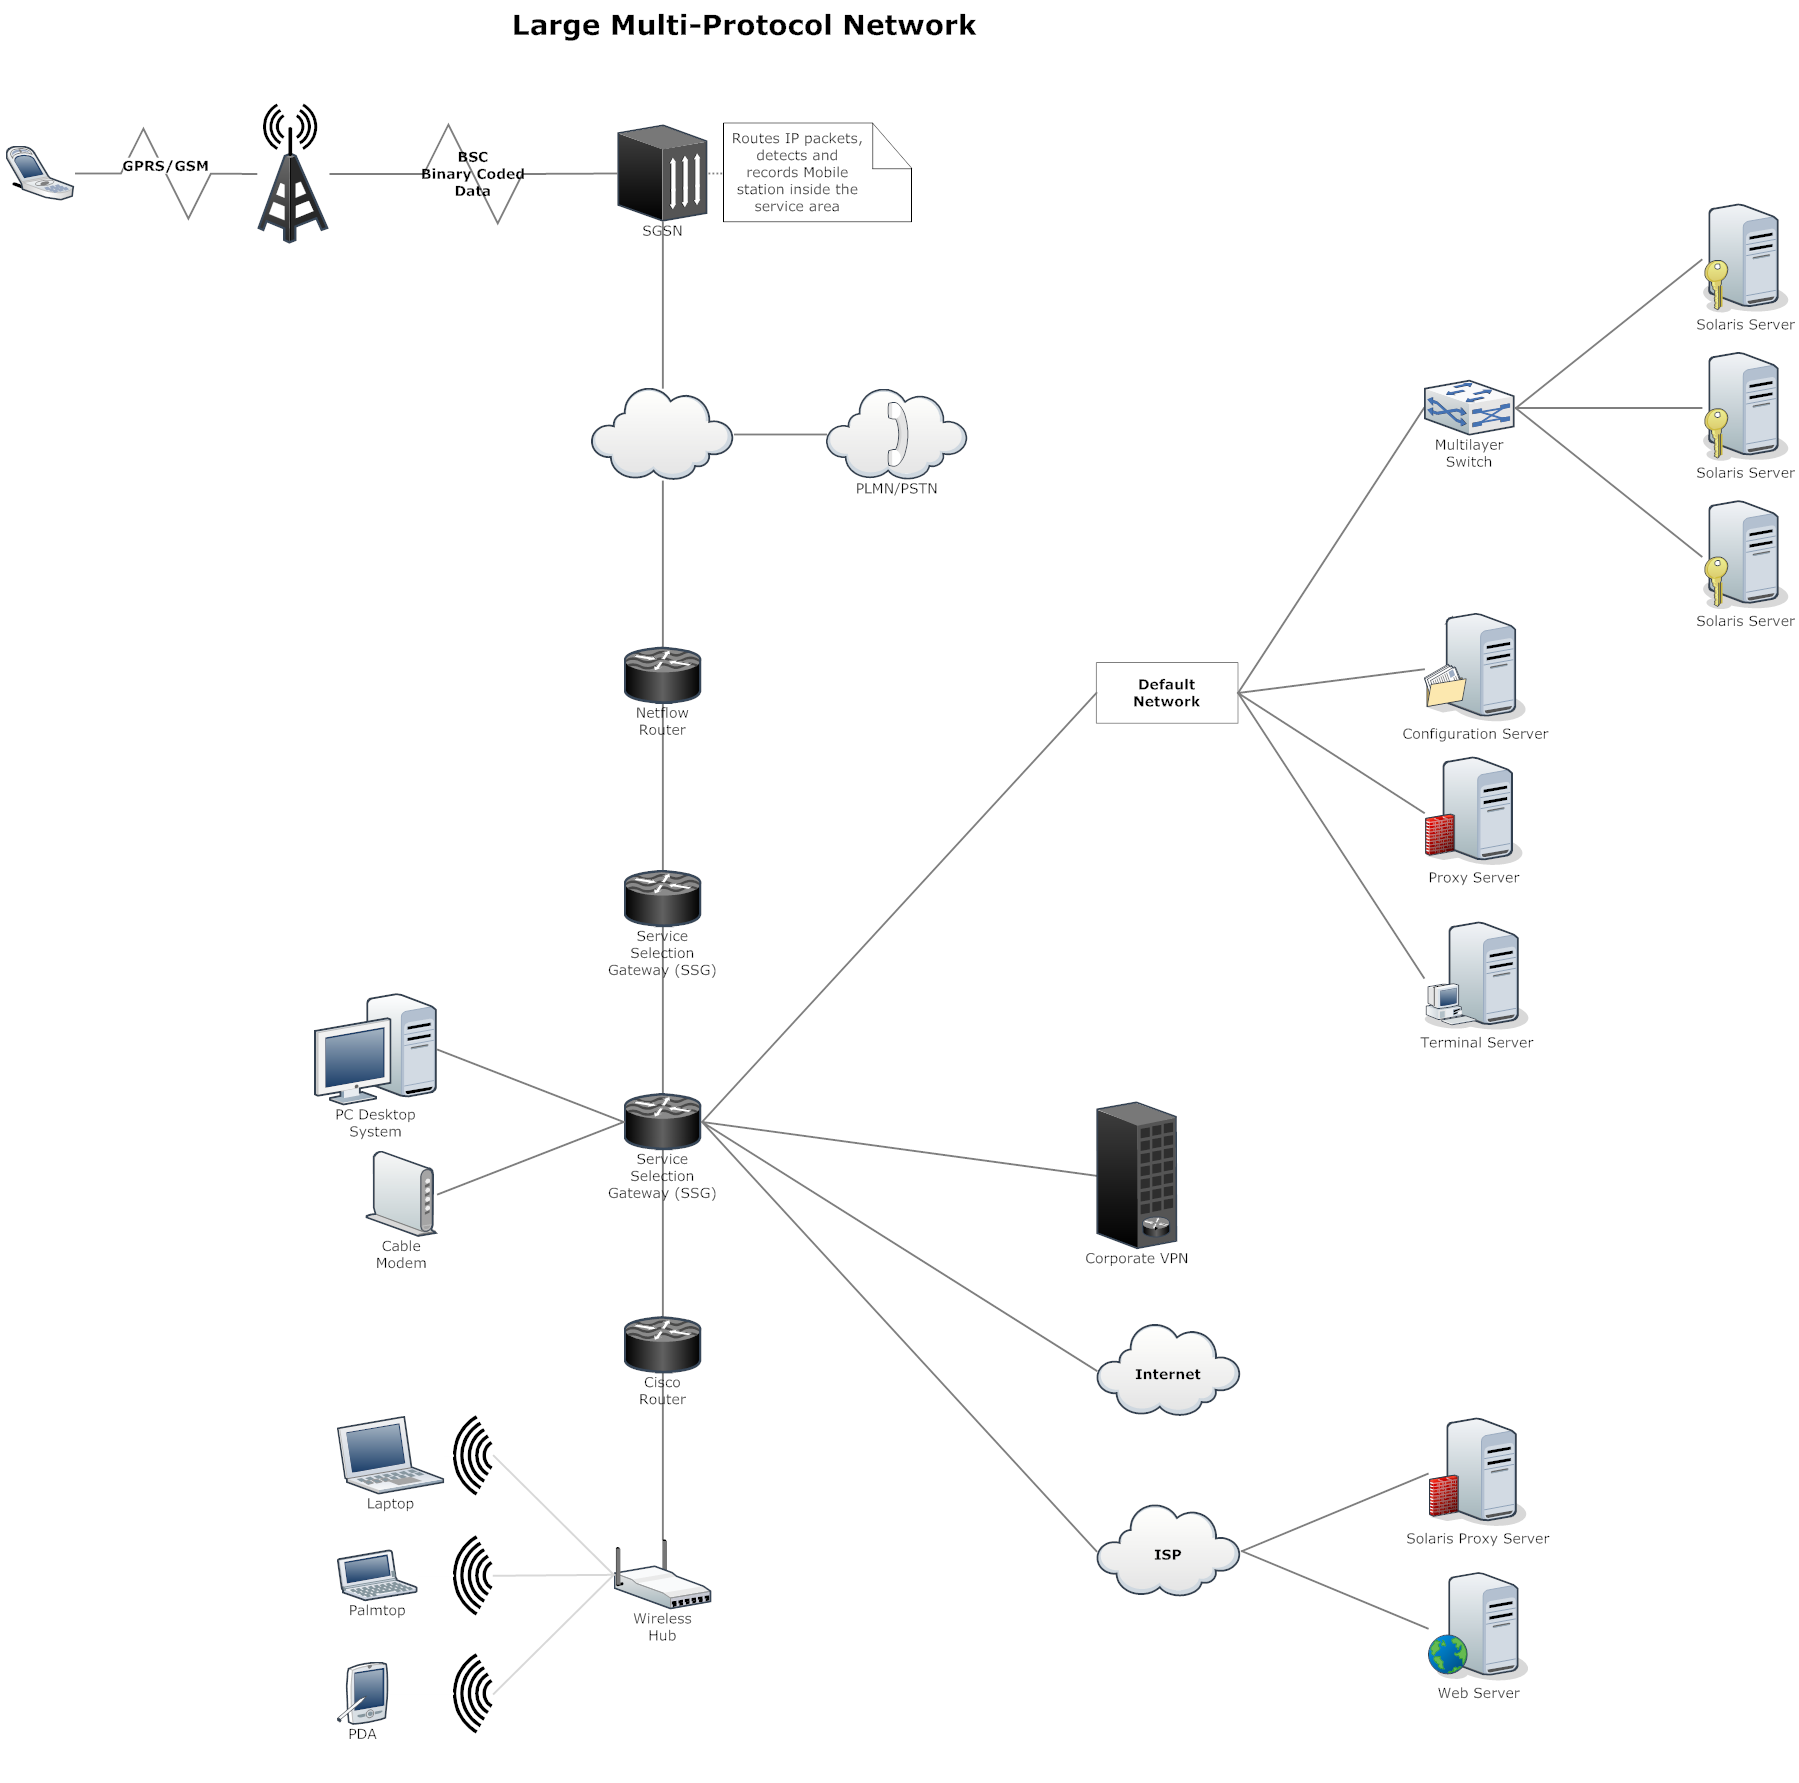 Network Diagram Example Large Multi Protocol Network Computer Network Networking Diagram